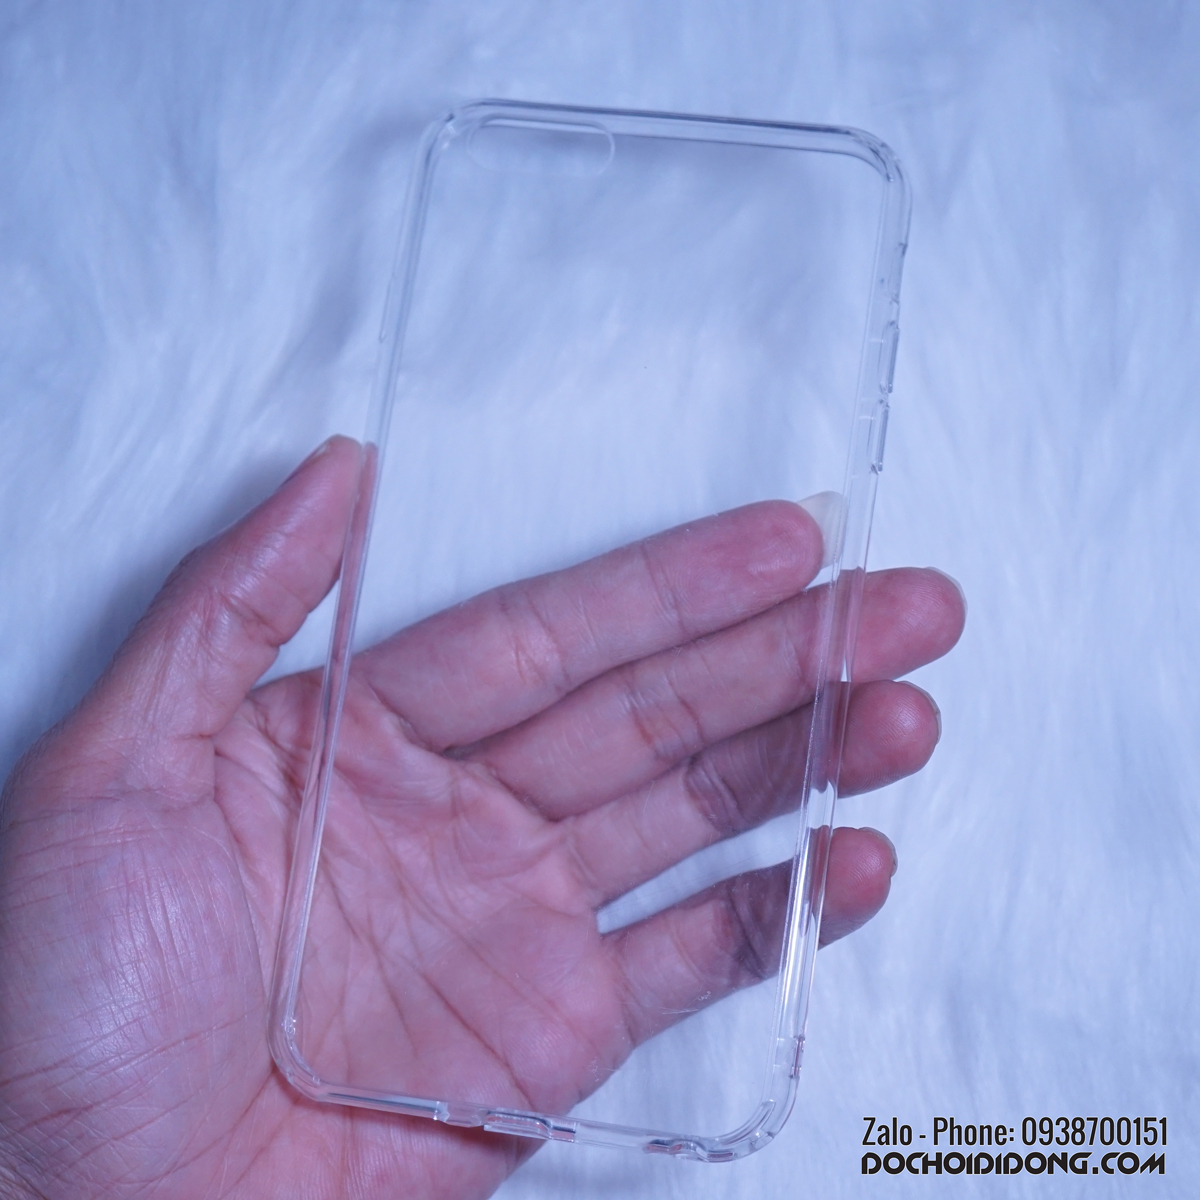 op-lung-iphone-6-6s-plus-likgus-lung-cung-vien-trong-chong-soc